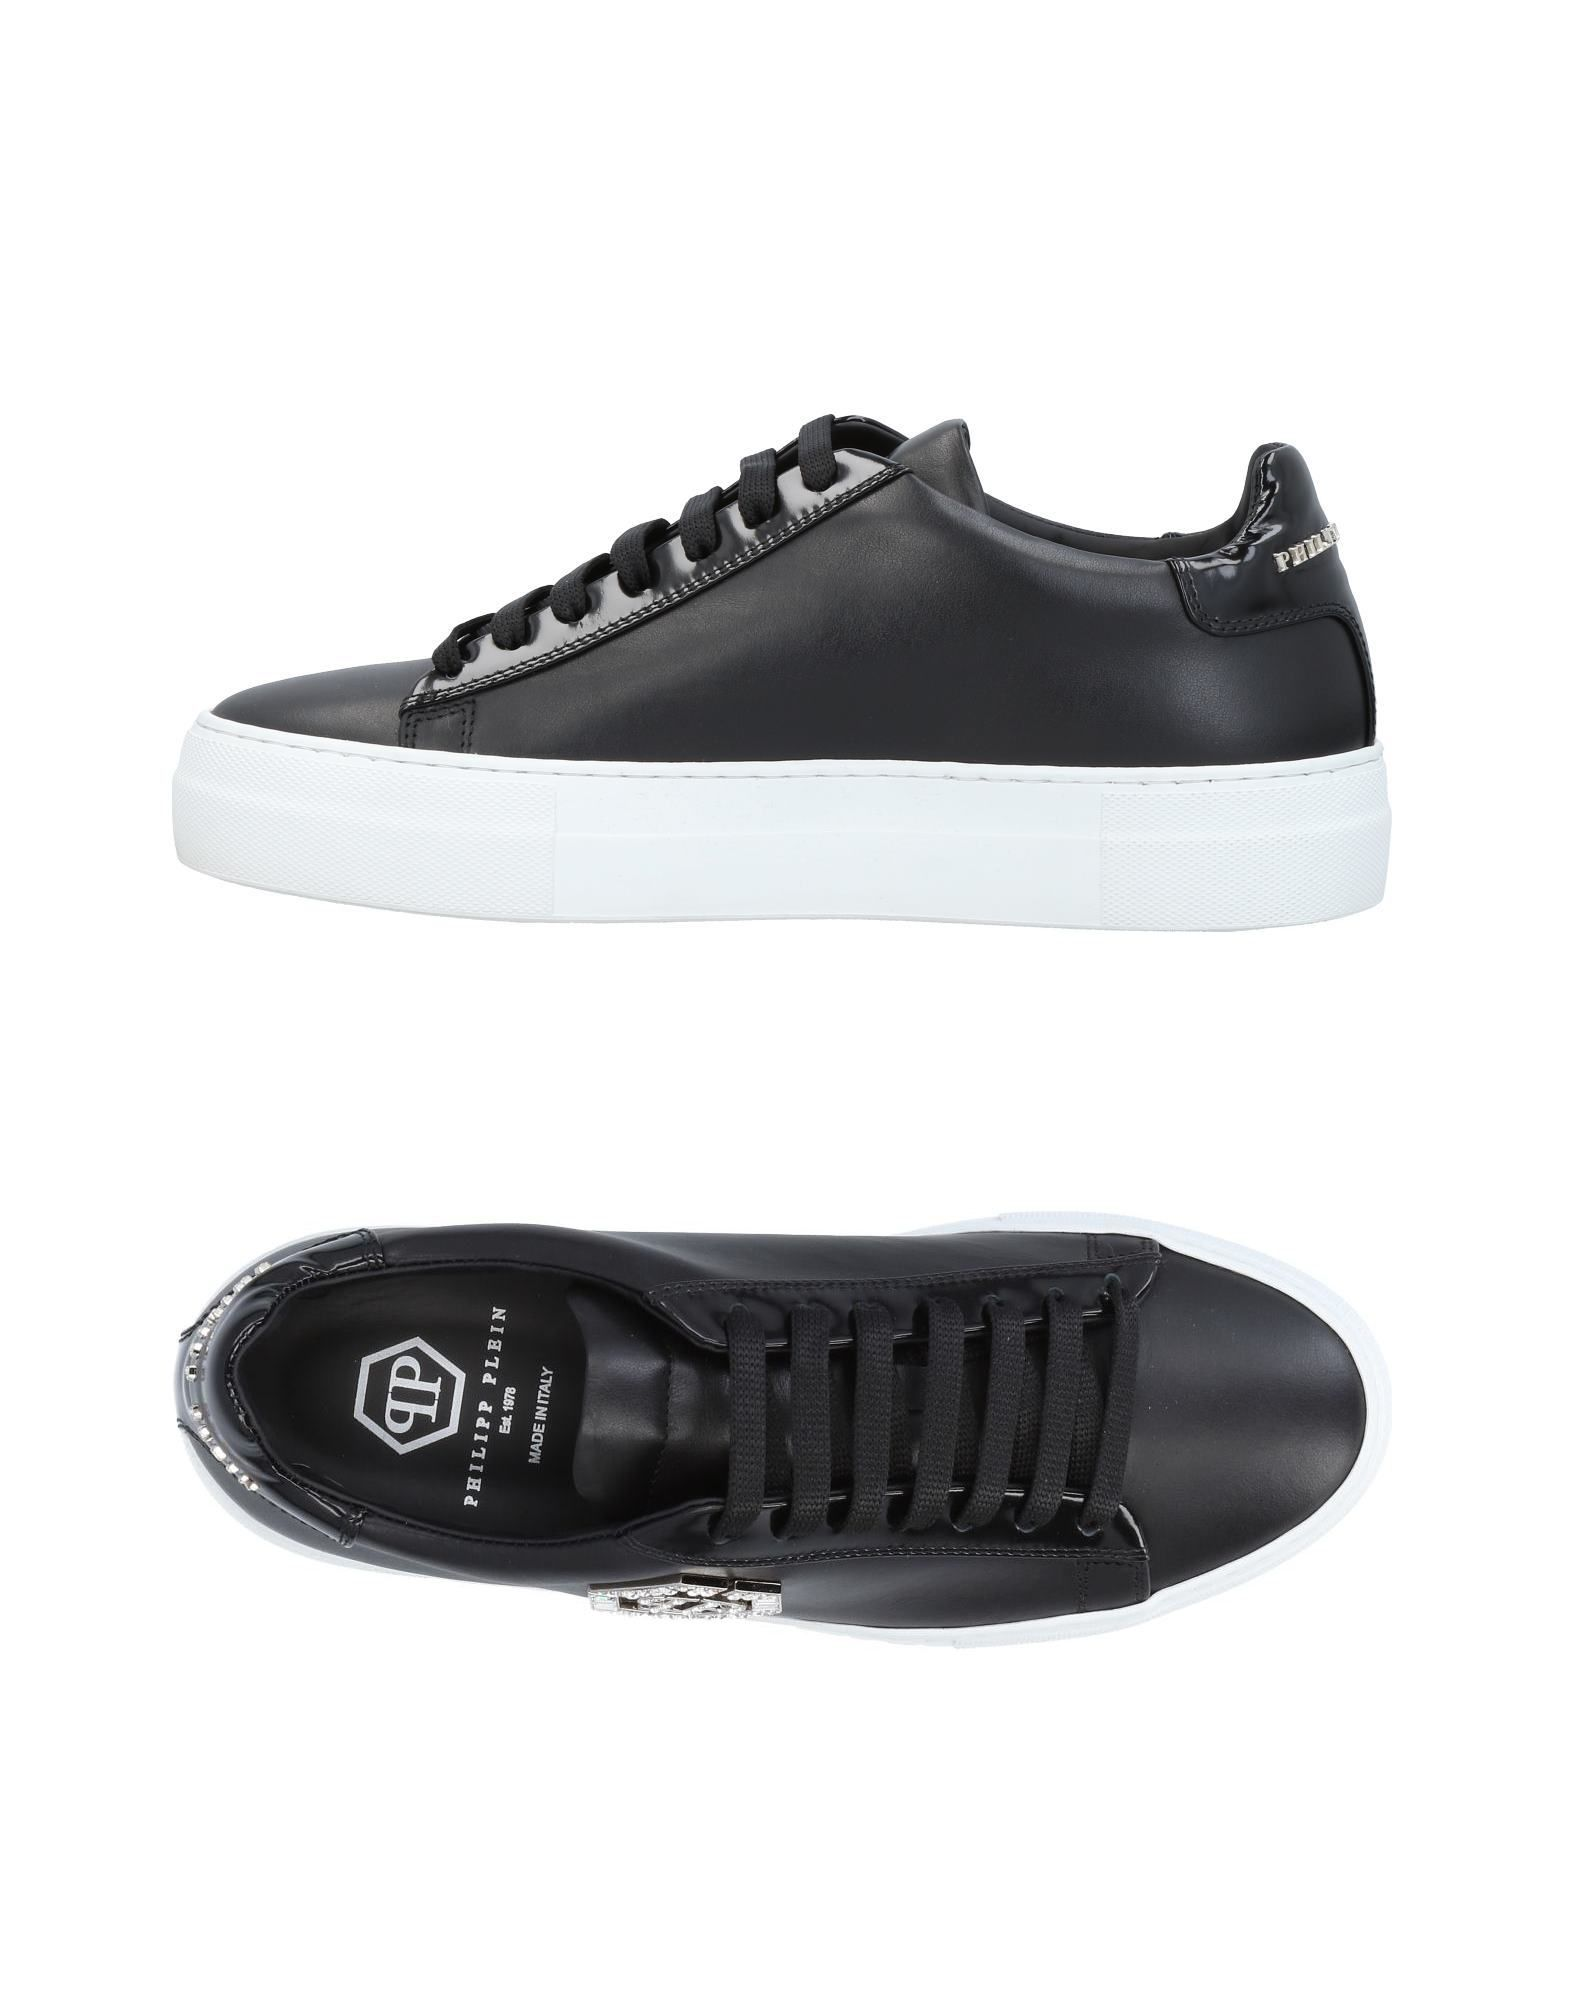 Sneakers Philipp Plein Donna - Acquista online su